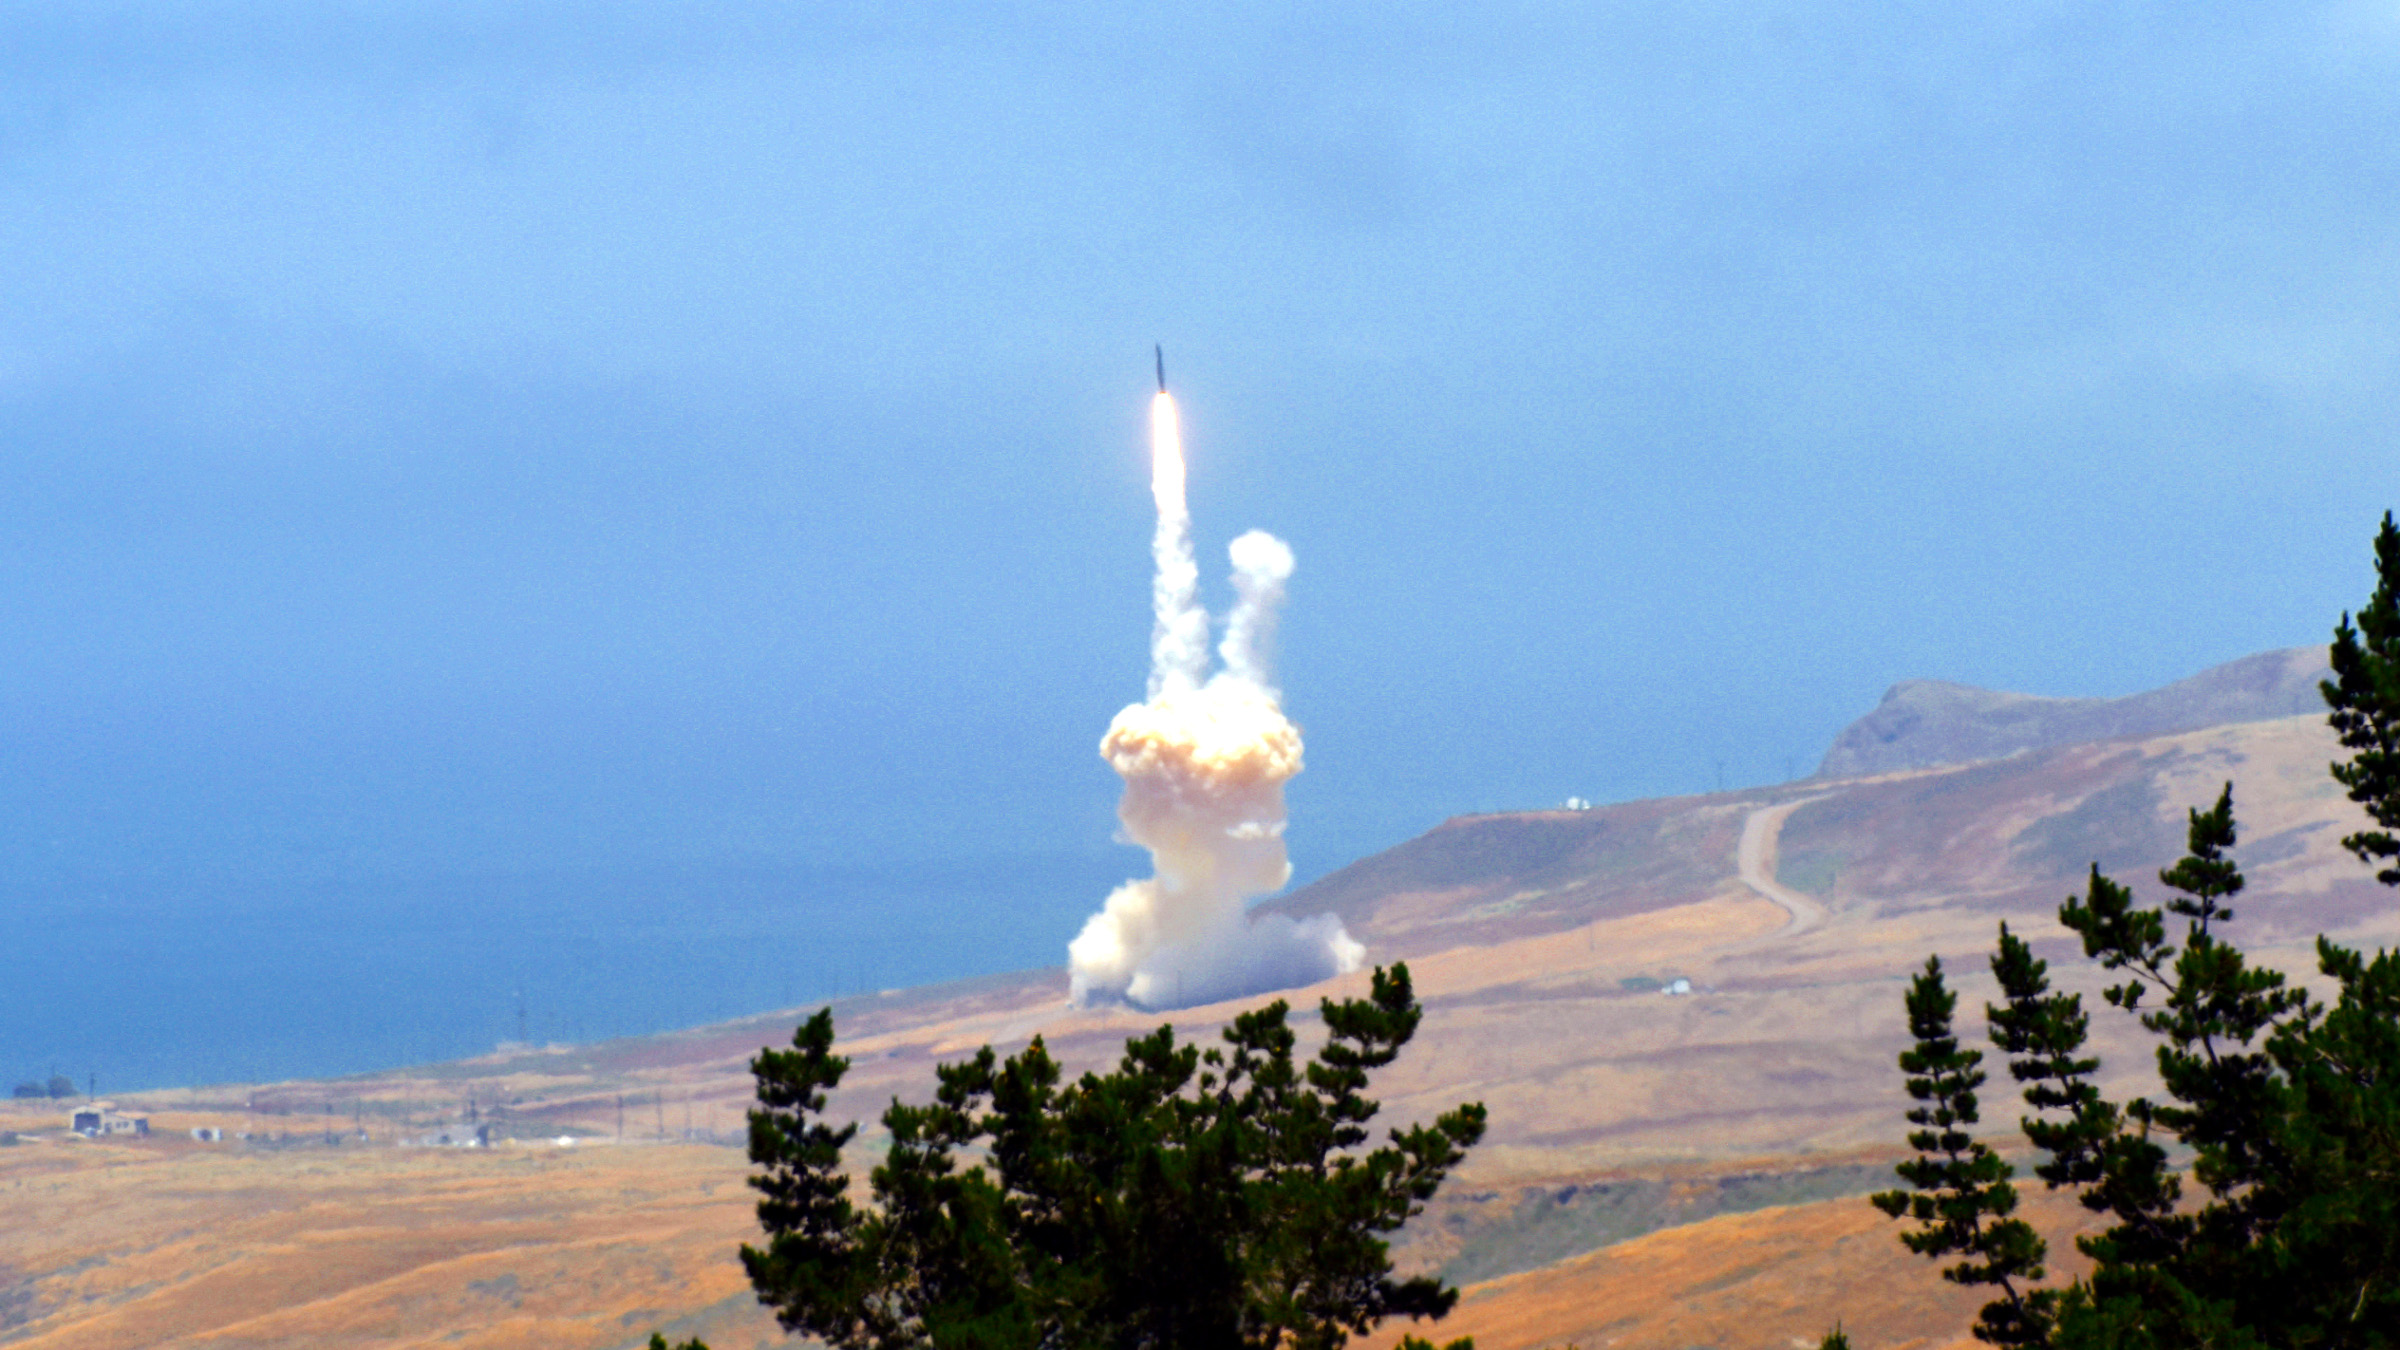 A missile interceptor launches from California's Vandenberg Air Force base during a 2017 test.